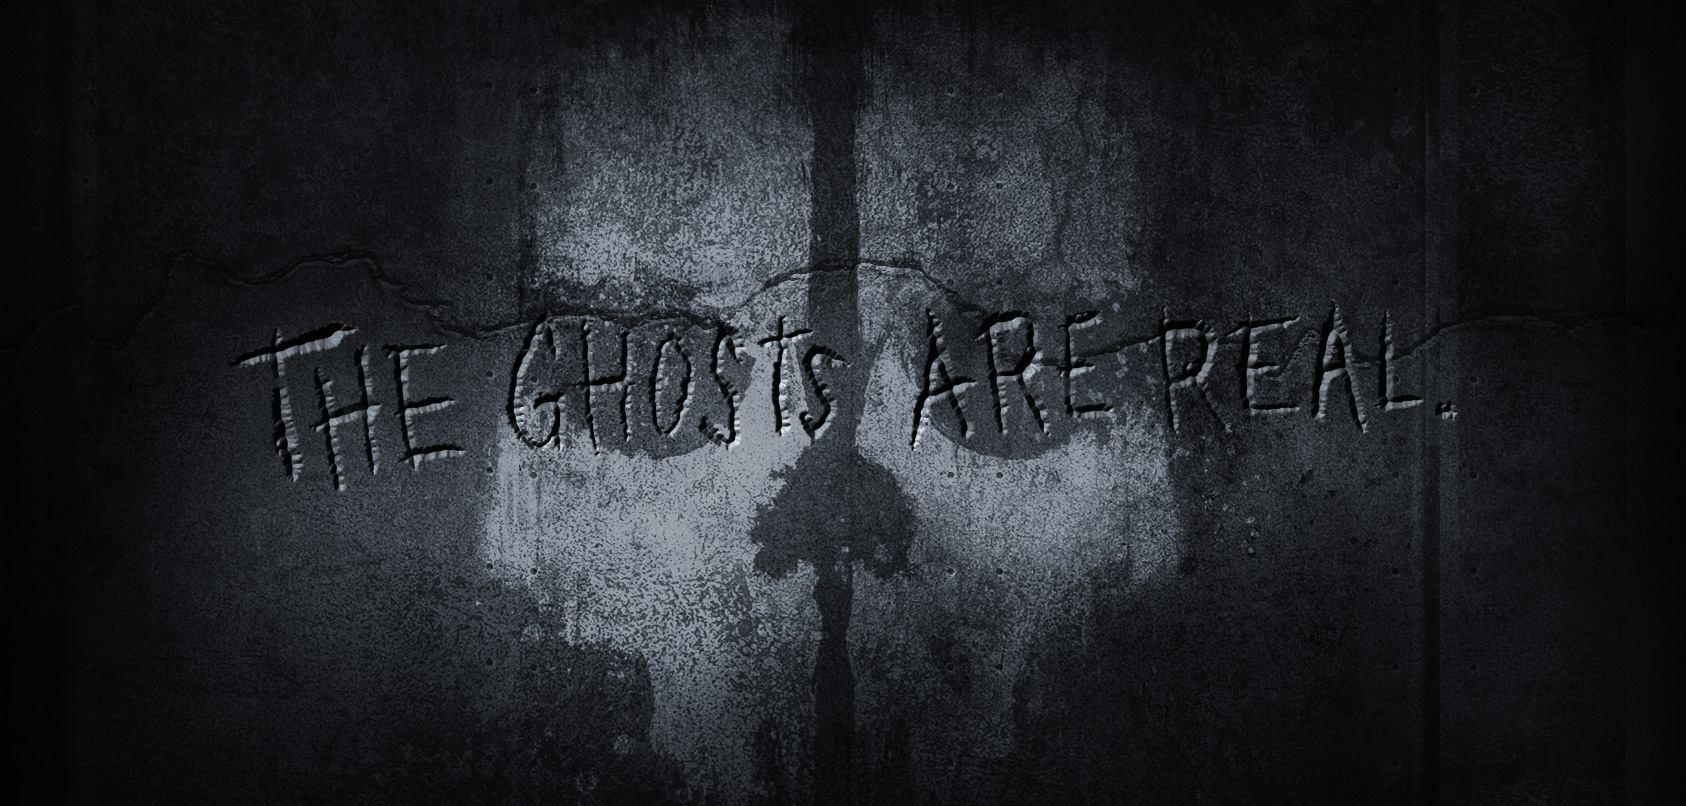 Call Of Duty Ghosts Wallpaper In Hd P Resolution 1686x806